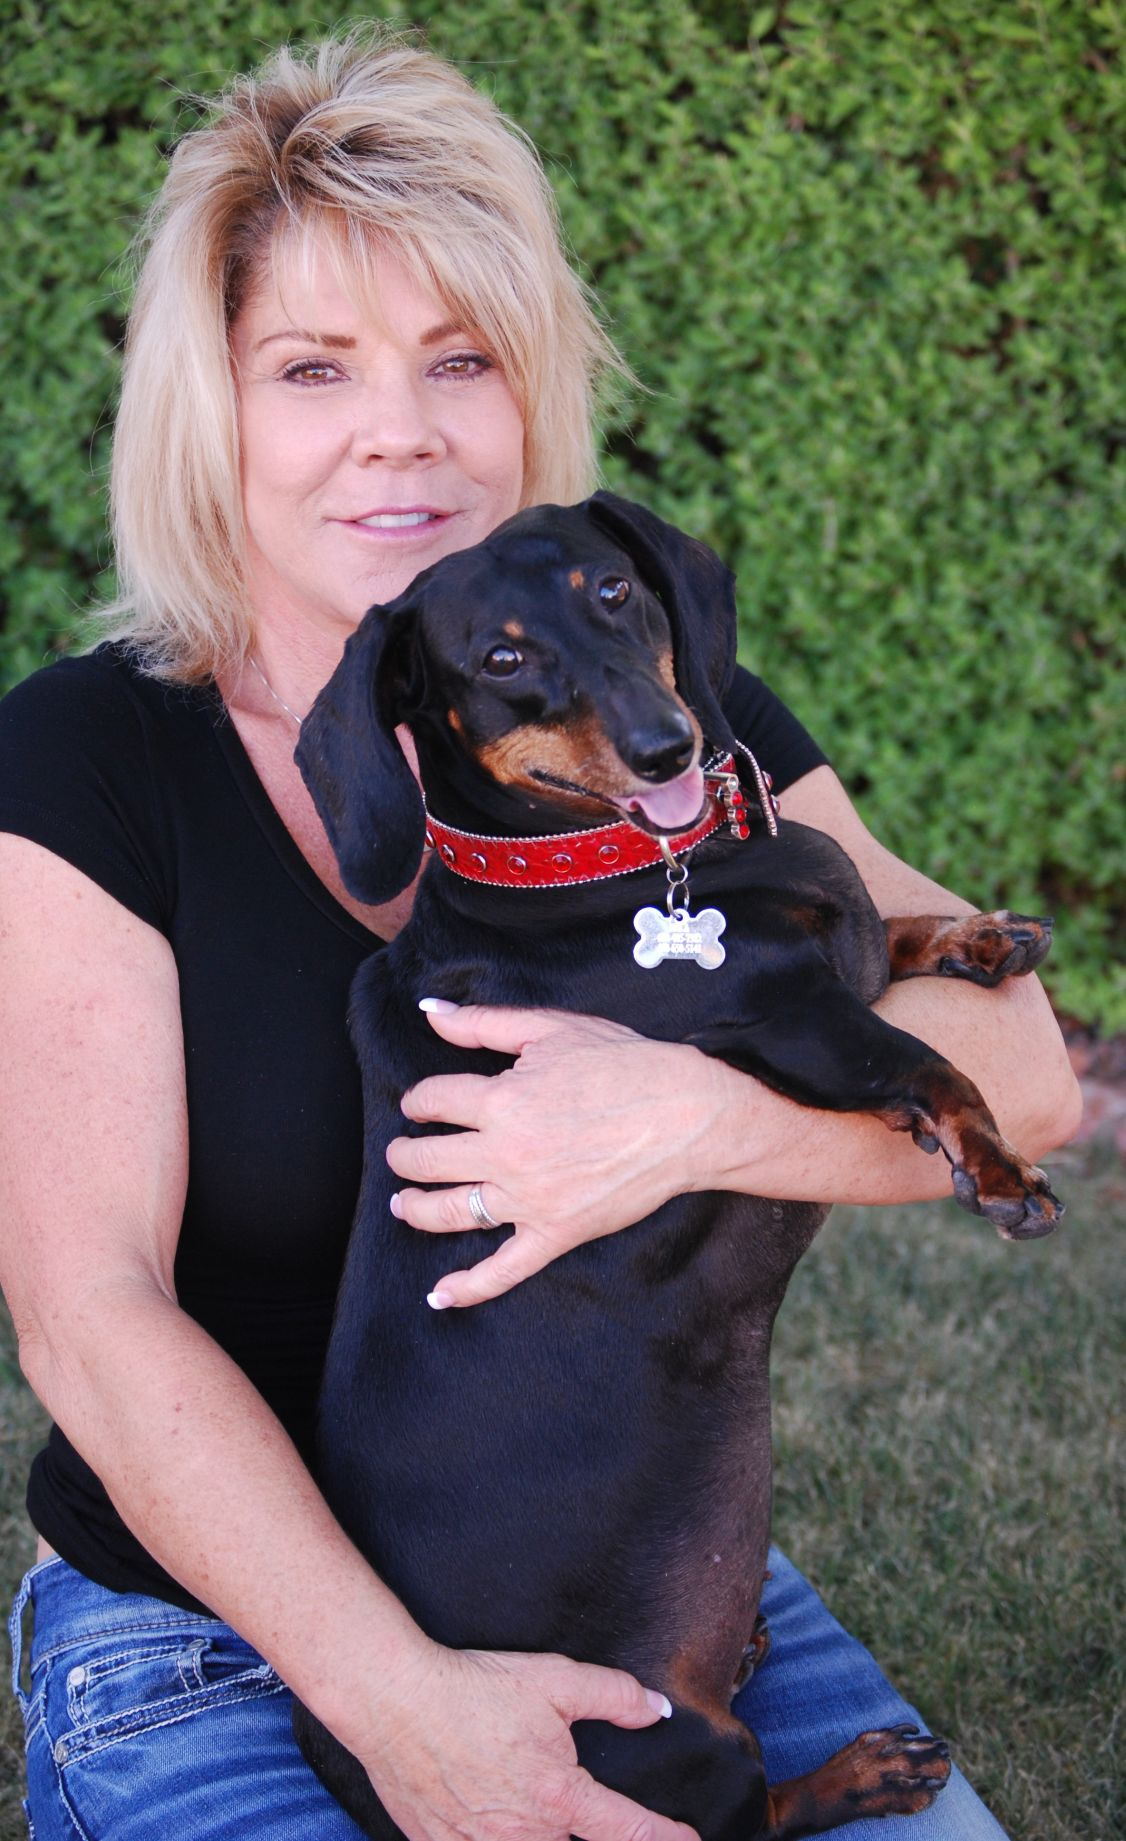 Karen White and her dachshund Ella Marie are preparing for the dog's first appearance at the Wienerschnitzel Weiner Dog Race in California.